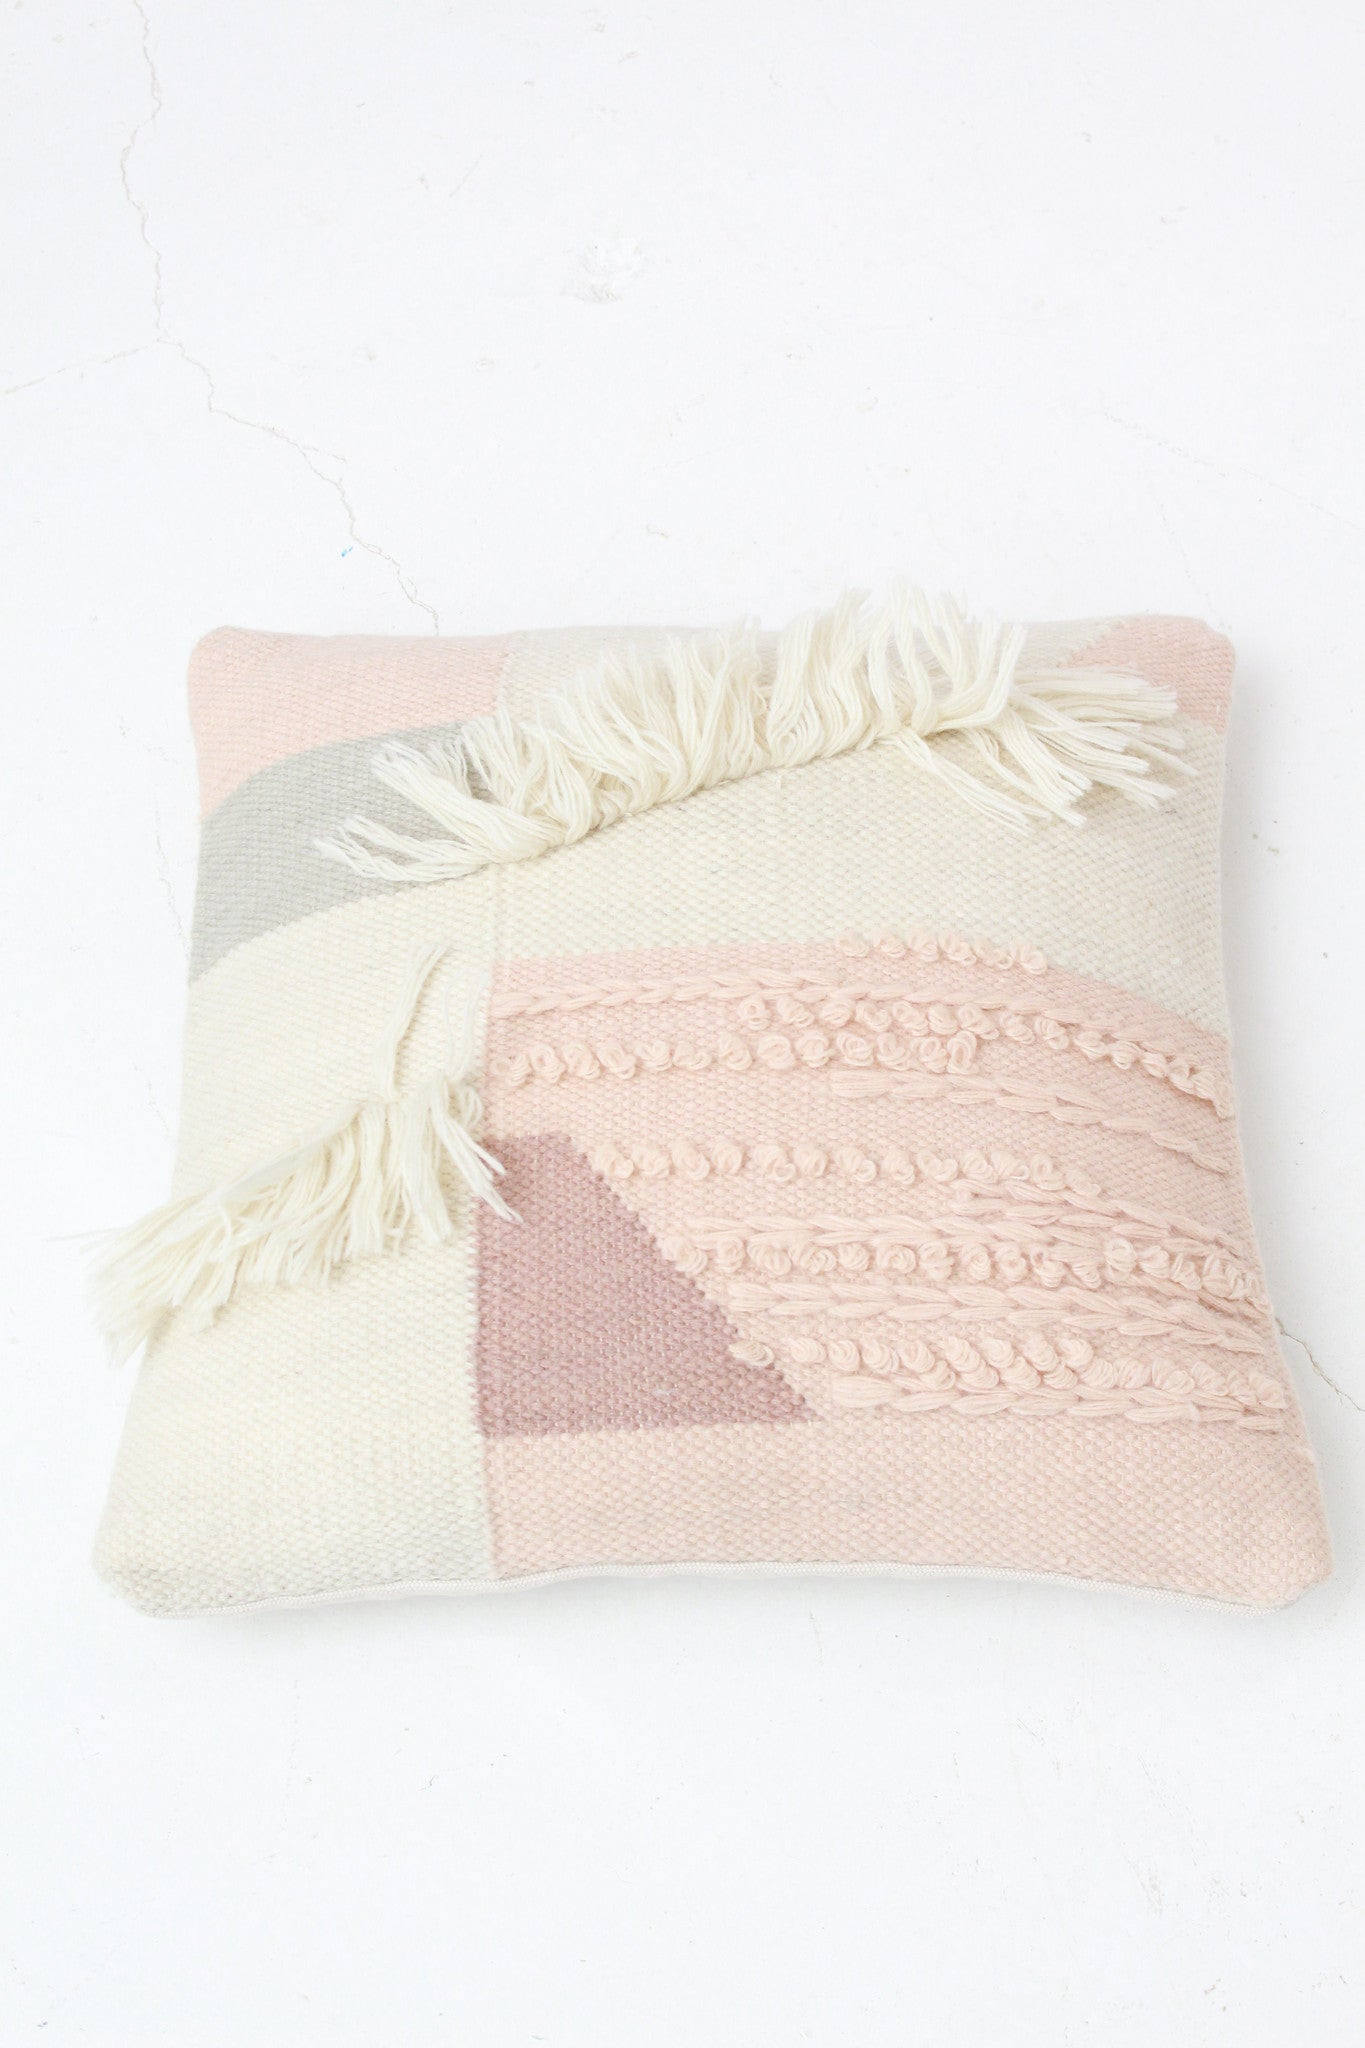 Beklina Elizabeth Pillow Two / Minna & Hawkins NY